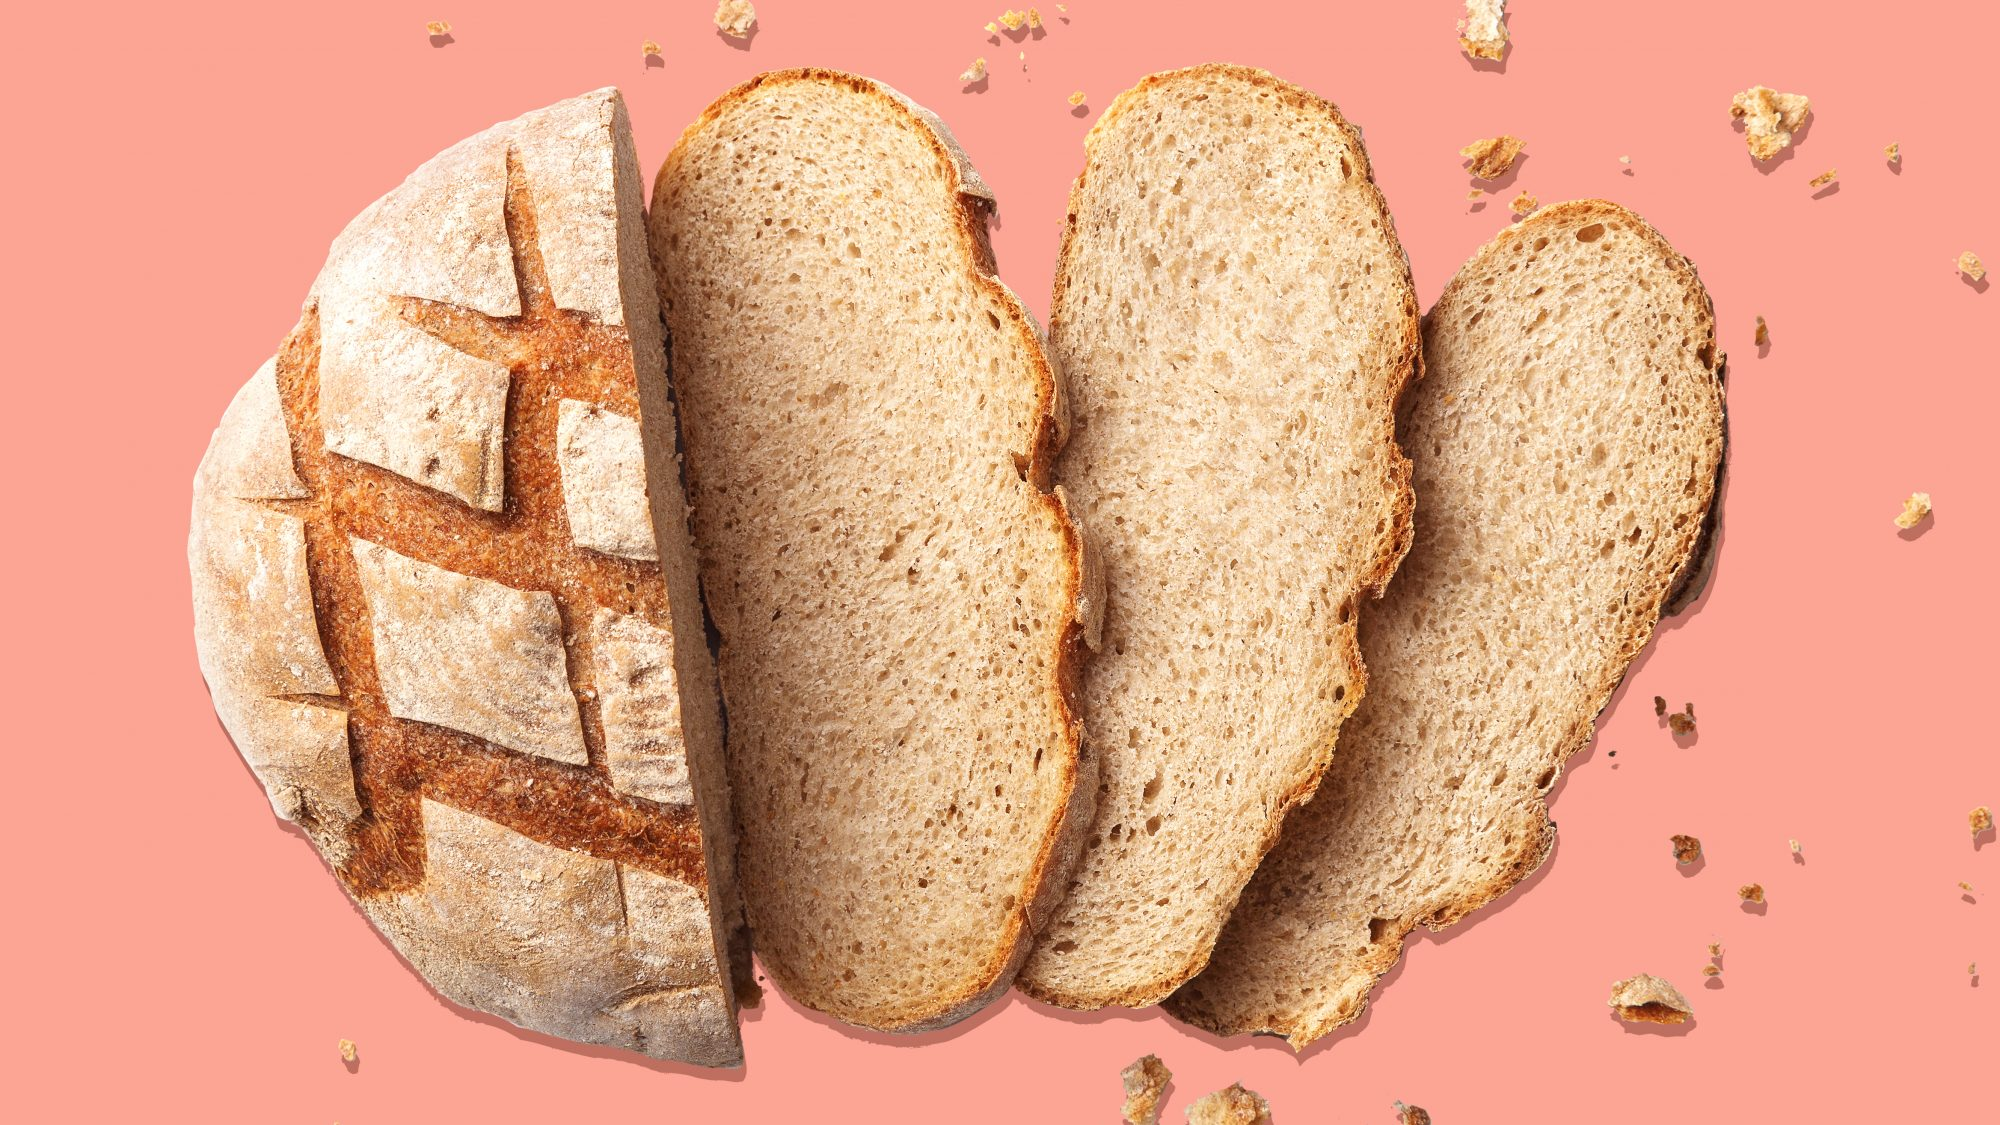 healthy-foods-you-think-are-unhealthy-bread